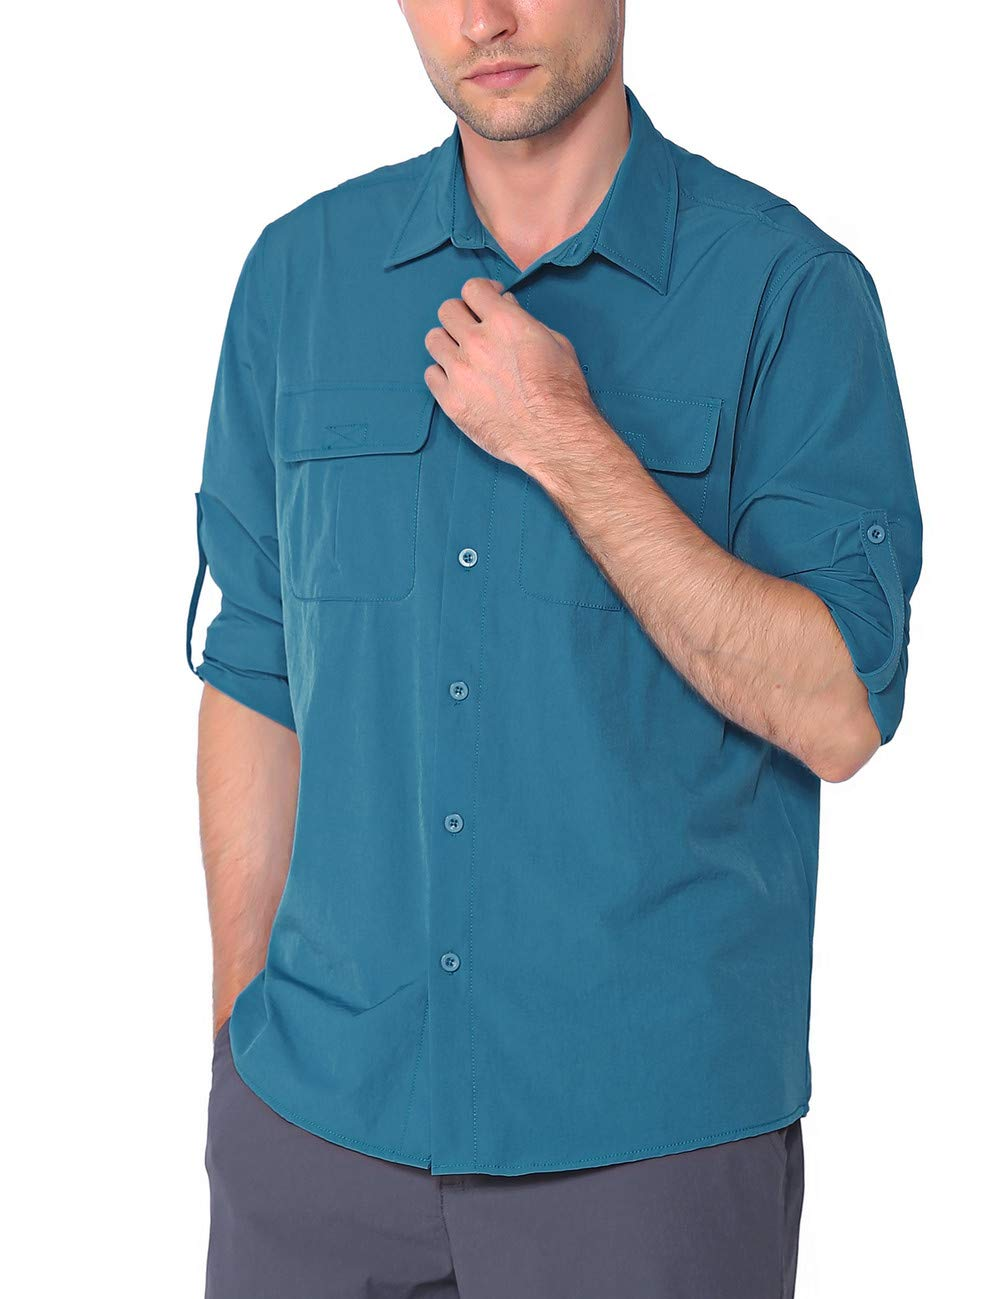 Nonwe Mens Hiking Camping Shirts Roll-Up Long Sleeve Quick Dry